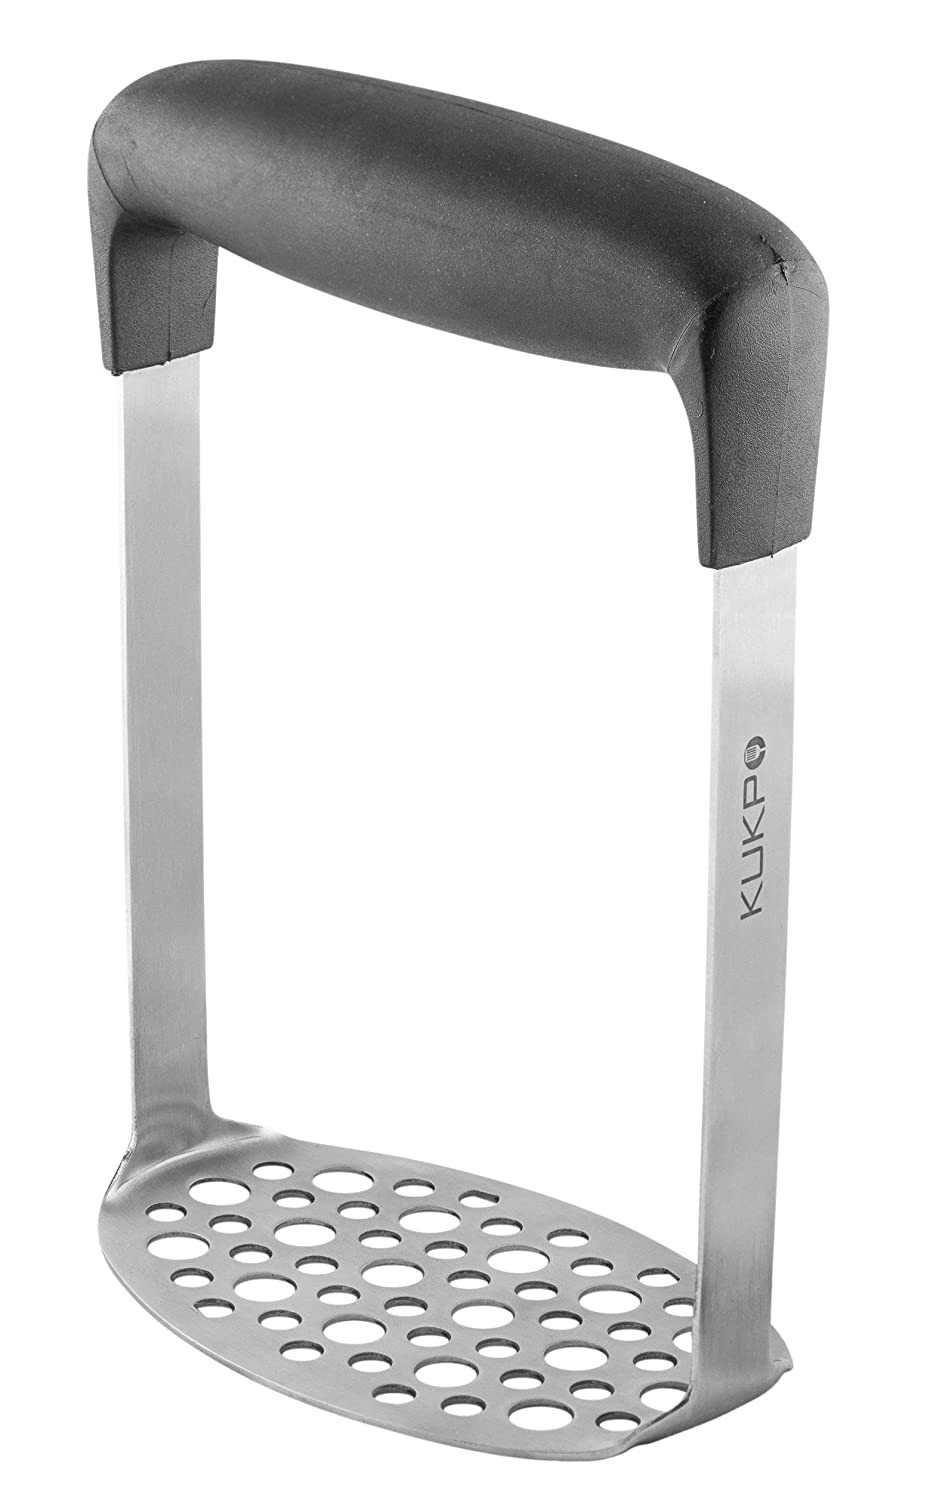 KUKPO Stainless Steel Potato Masher with Broad and Ergonomic Horizontal Handle – Fine-grid Mashing Plate for Smooth Mashed Potatoes, Vegetables and Fruits